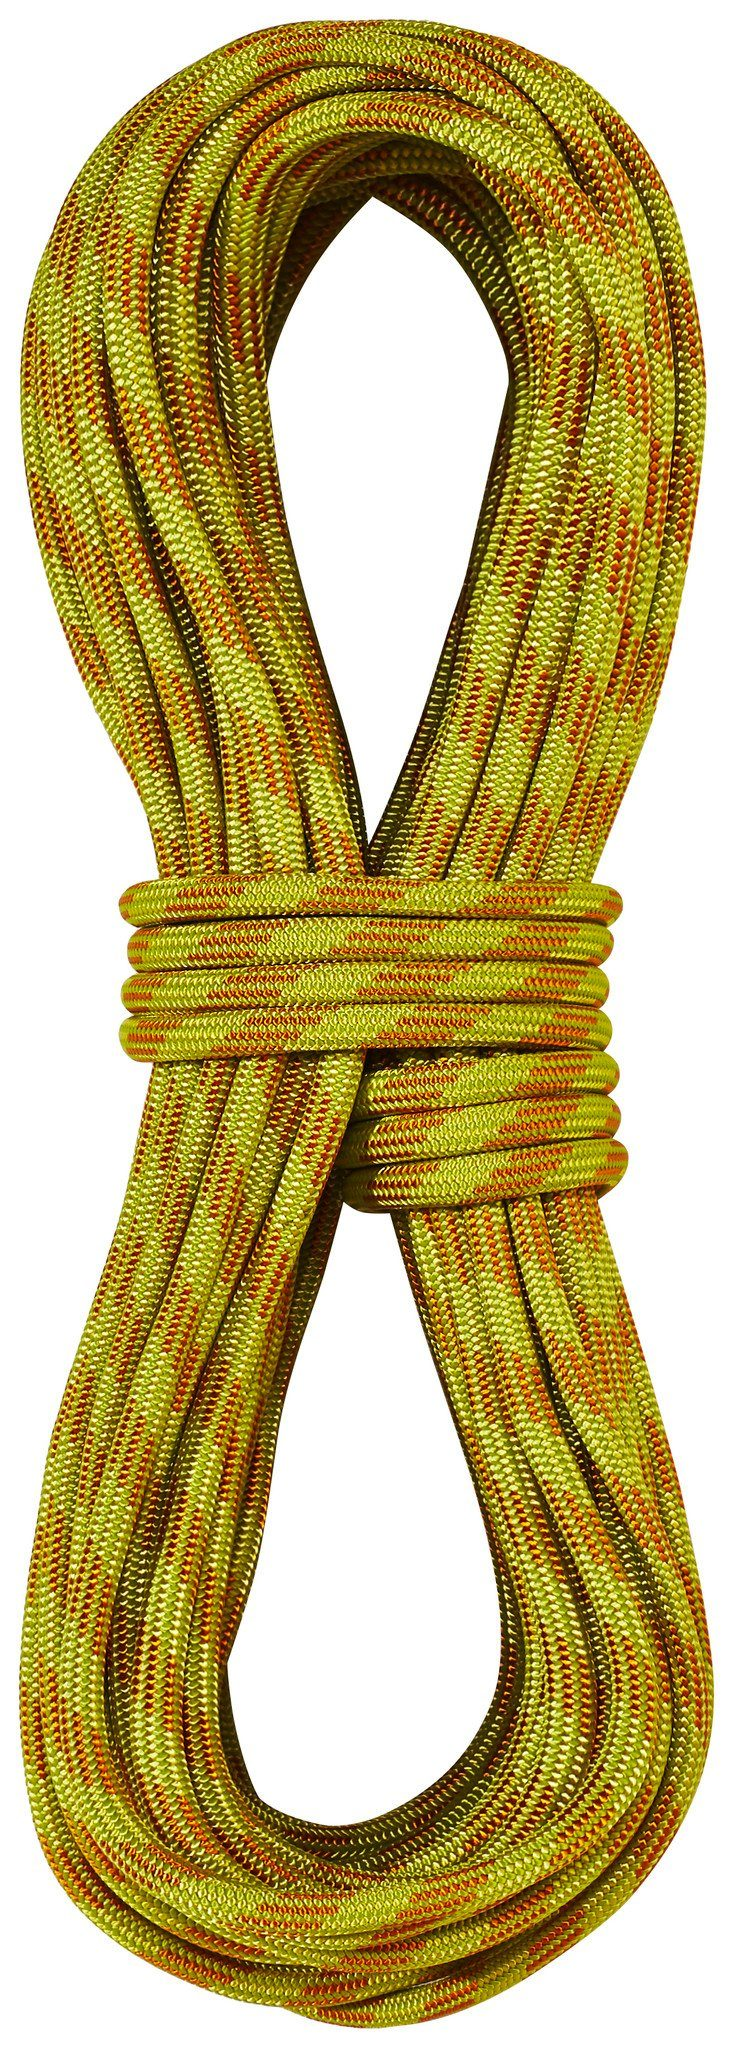 Edelrid Kletterseil »Confidence Rope 8mm 20m«